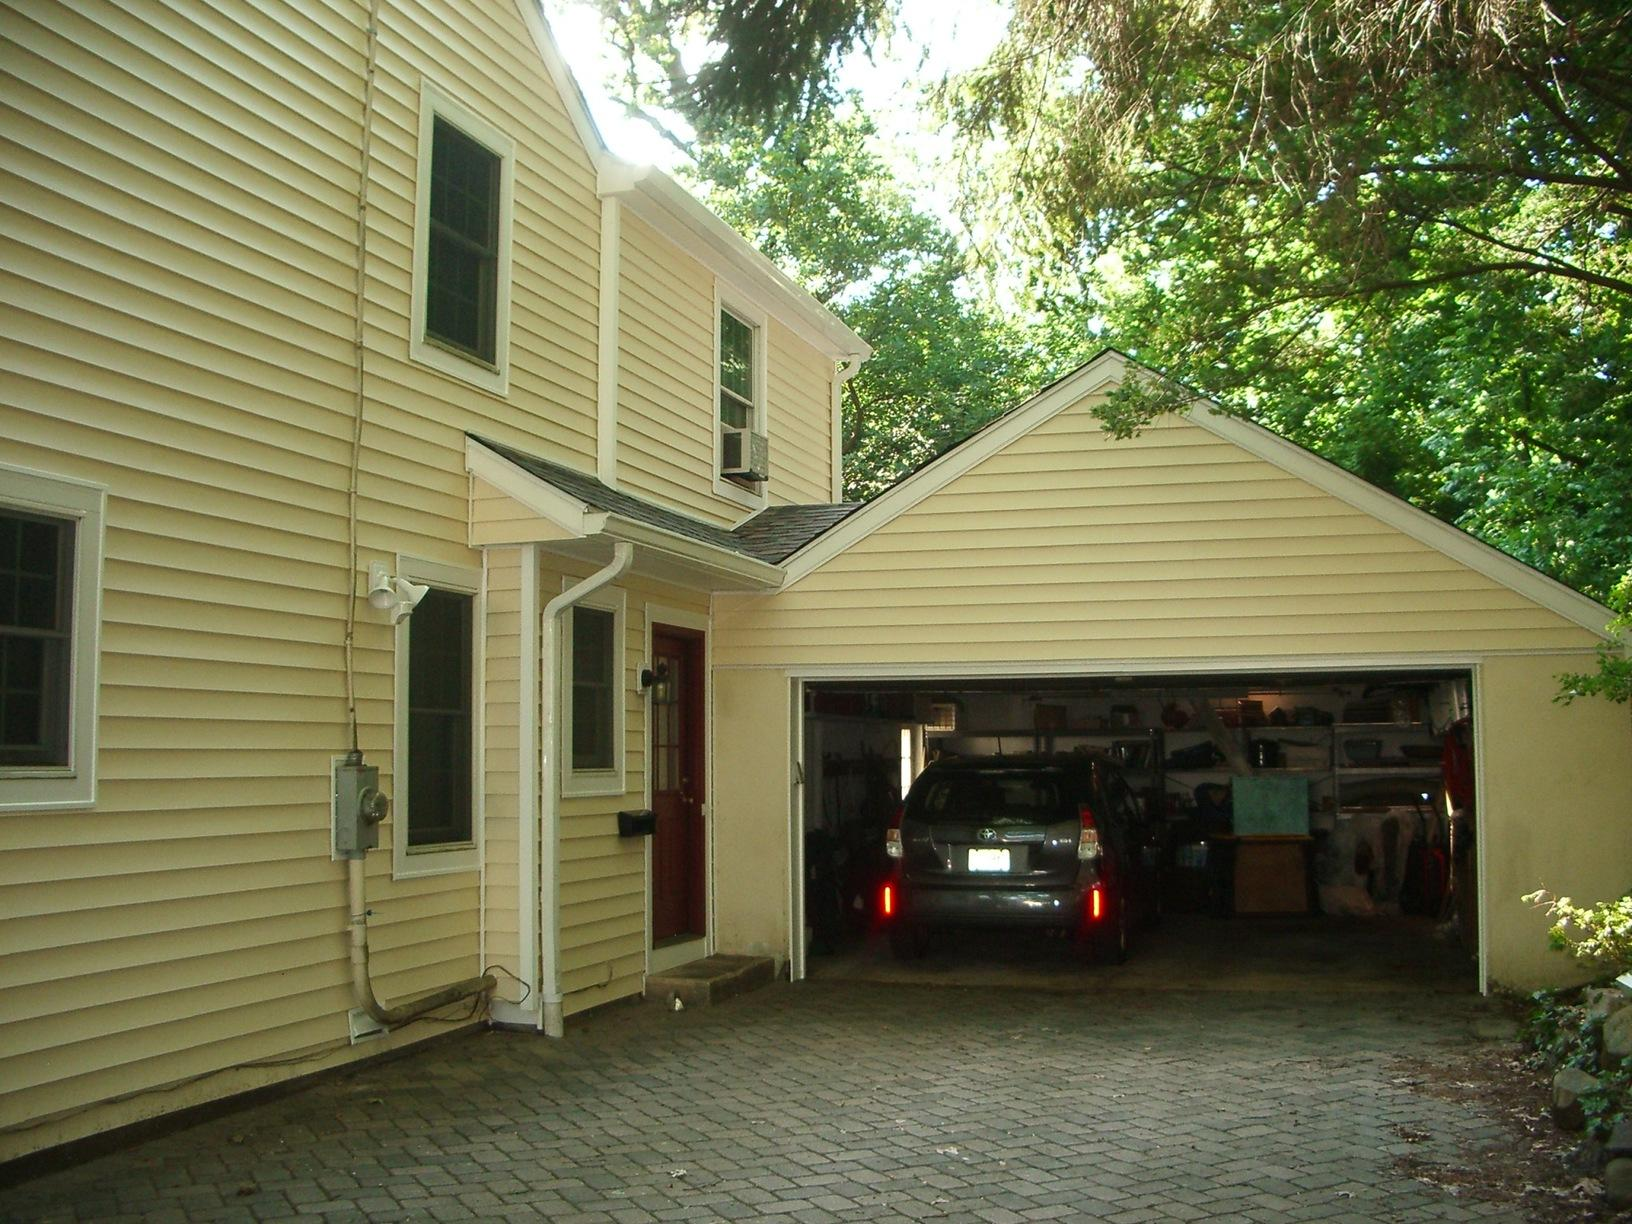 Odyssey Adobe Crean Insulated Vinyl Clap Board Siding and White Trim Installed in Mountain Lakes, NJ